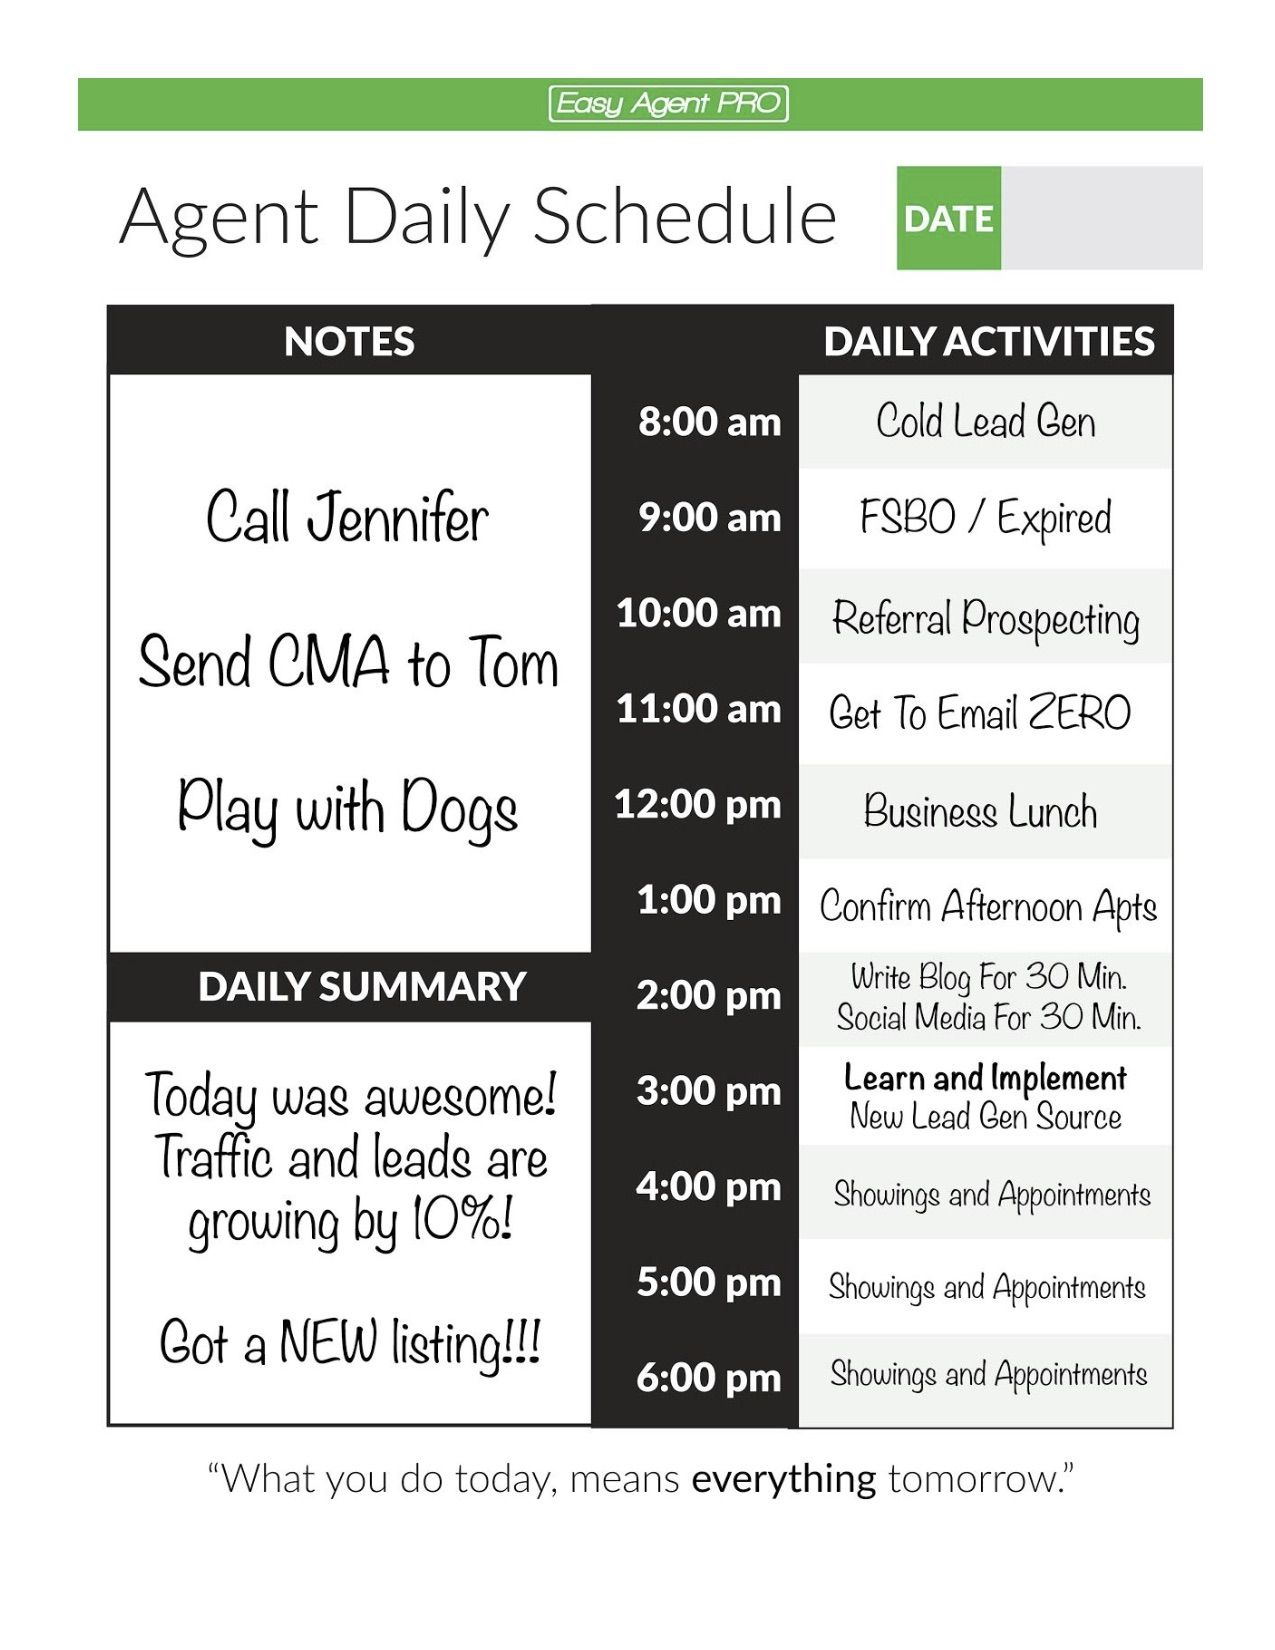 Real Estate Agent Daily Planner To Double Your Leads